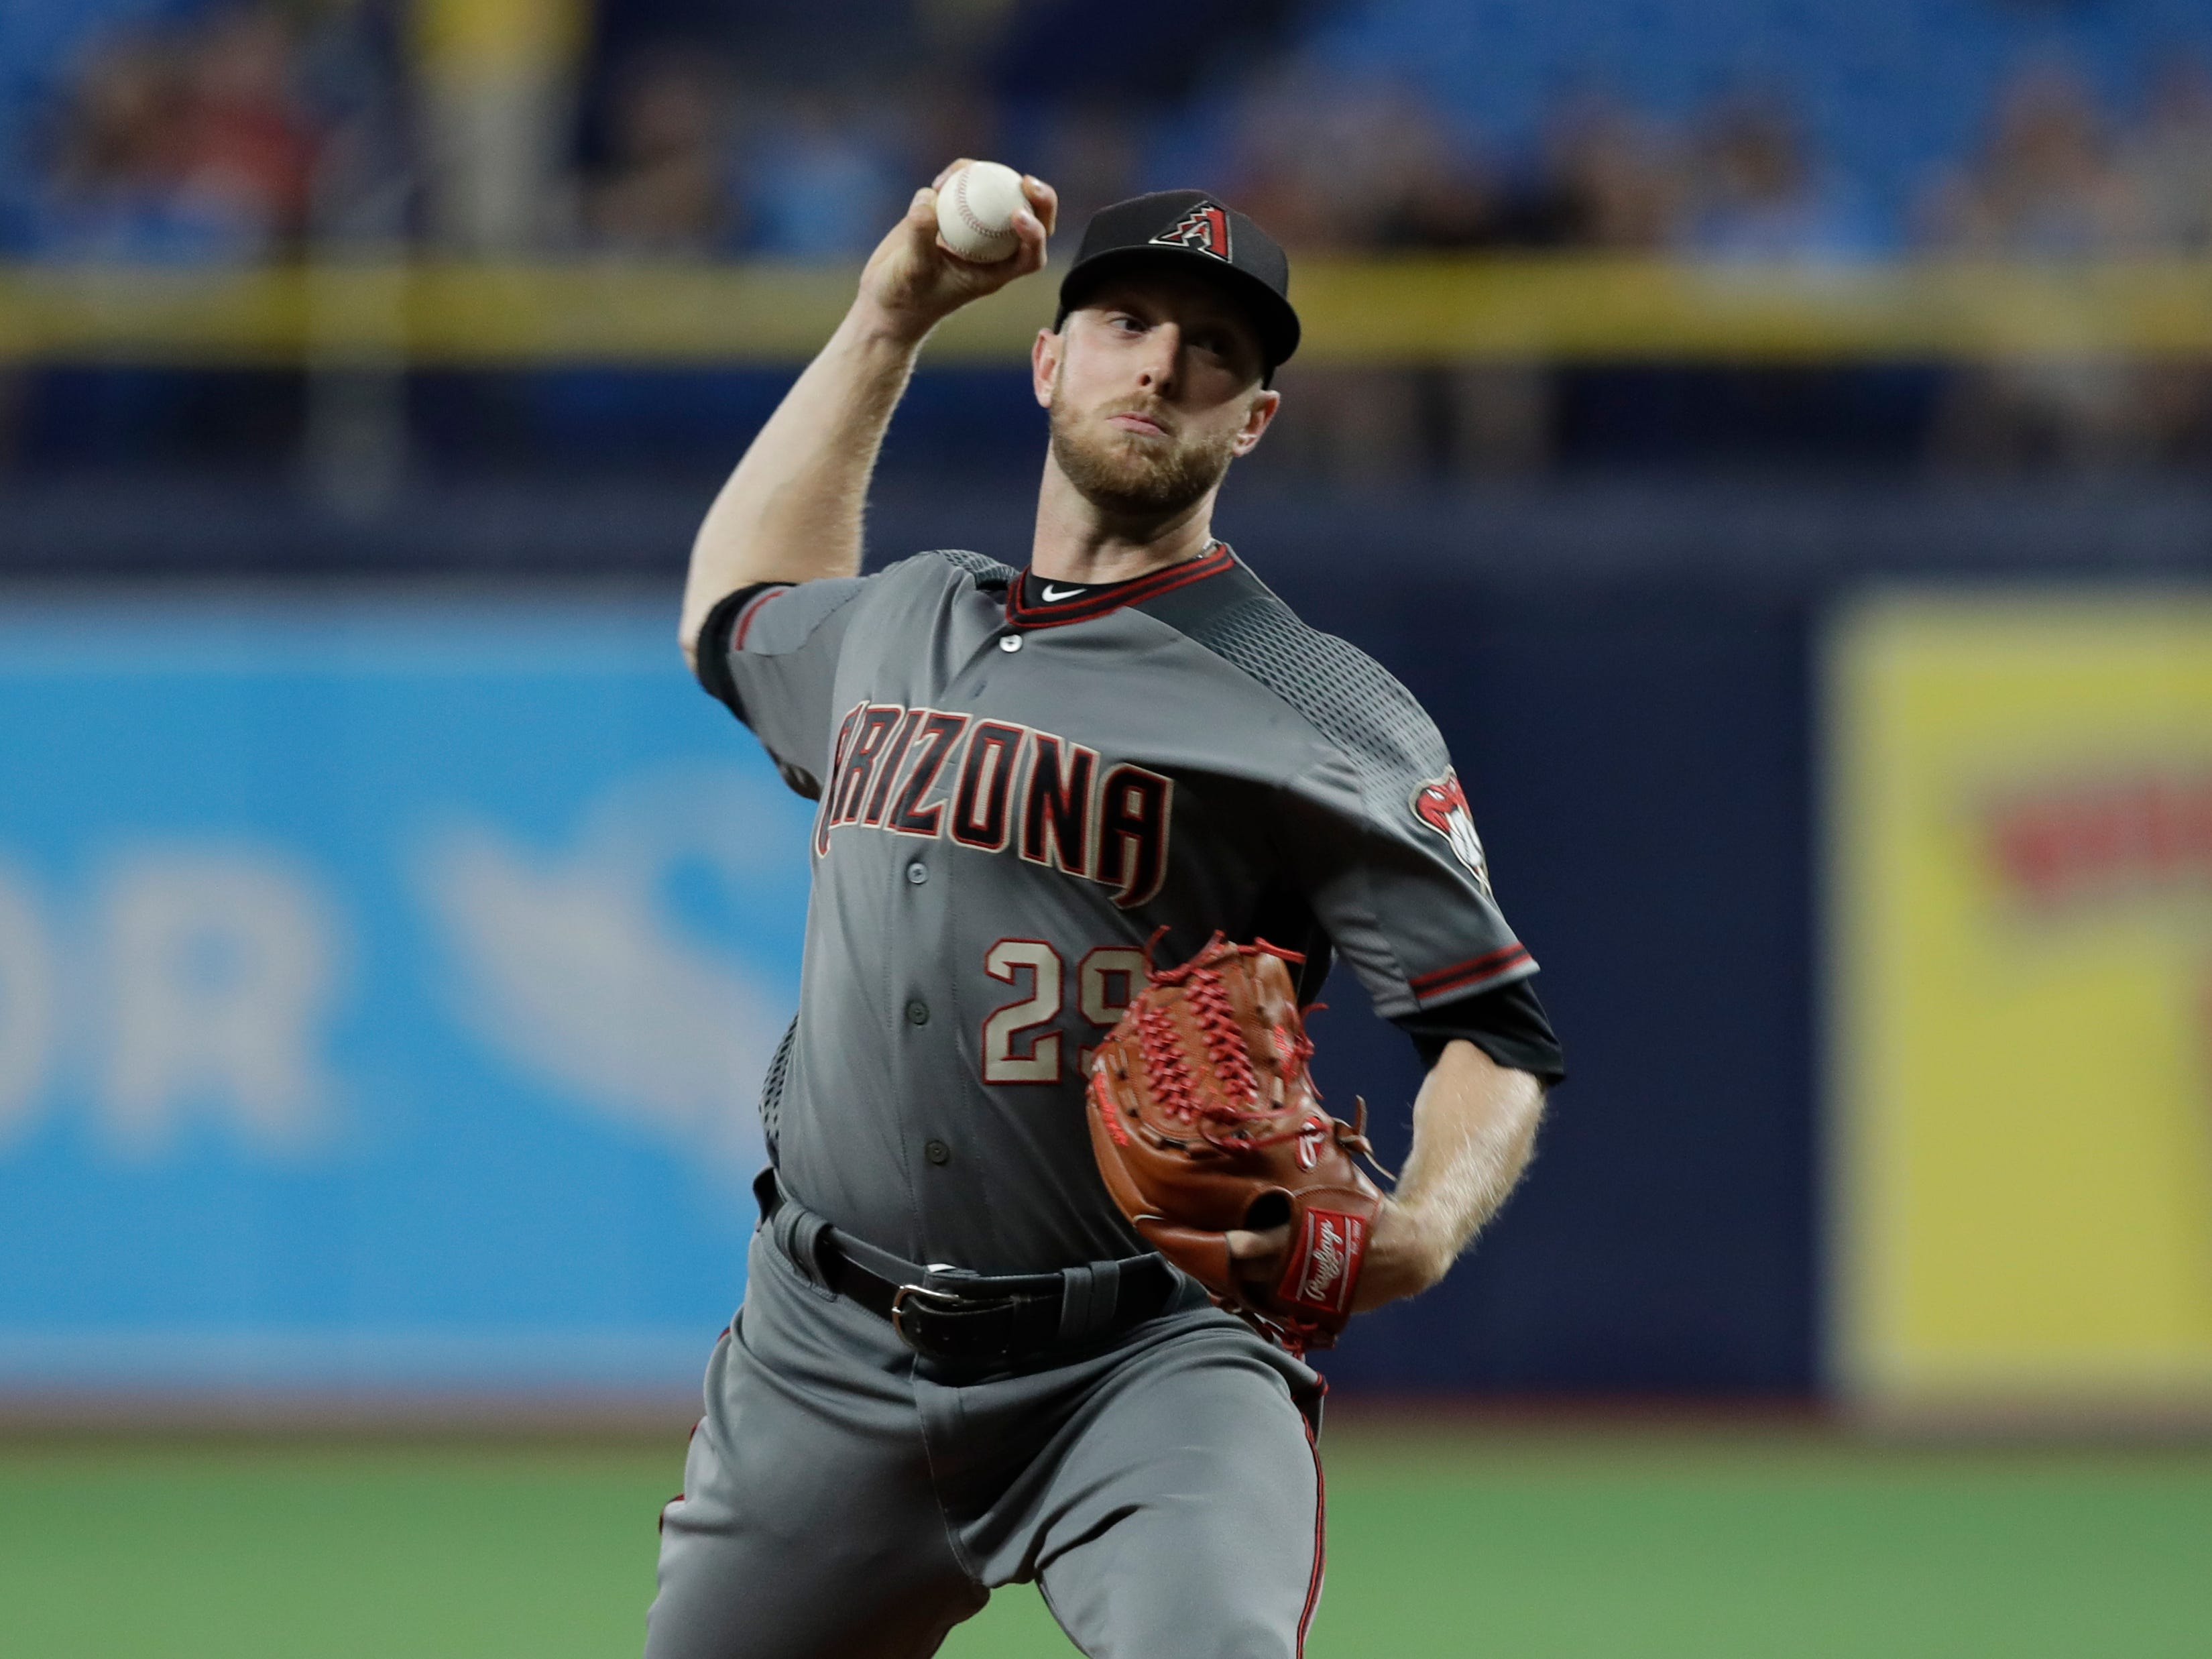 Arizona Diamondbacks starting pitcher Merrill Kelly during the first inning of a baseball game against the Tampa Bay Rays Monday, May 6, 2019, in St. Petersburg, Fla. (AP Photo/Chris O'Meara)